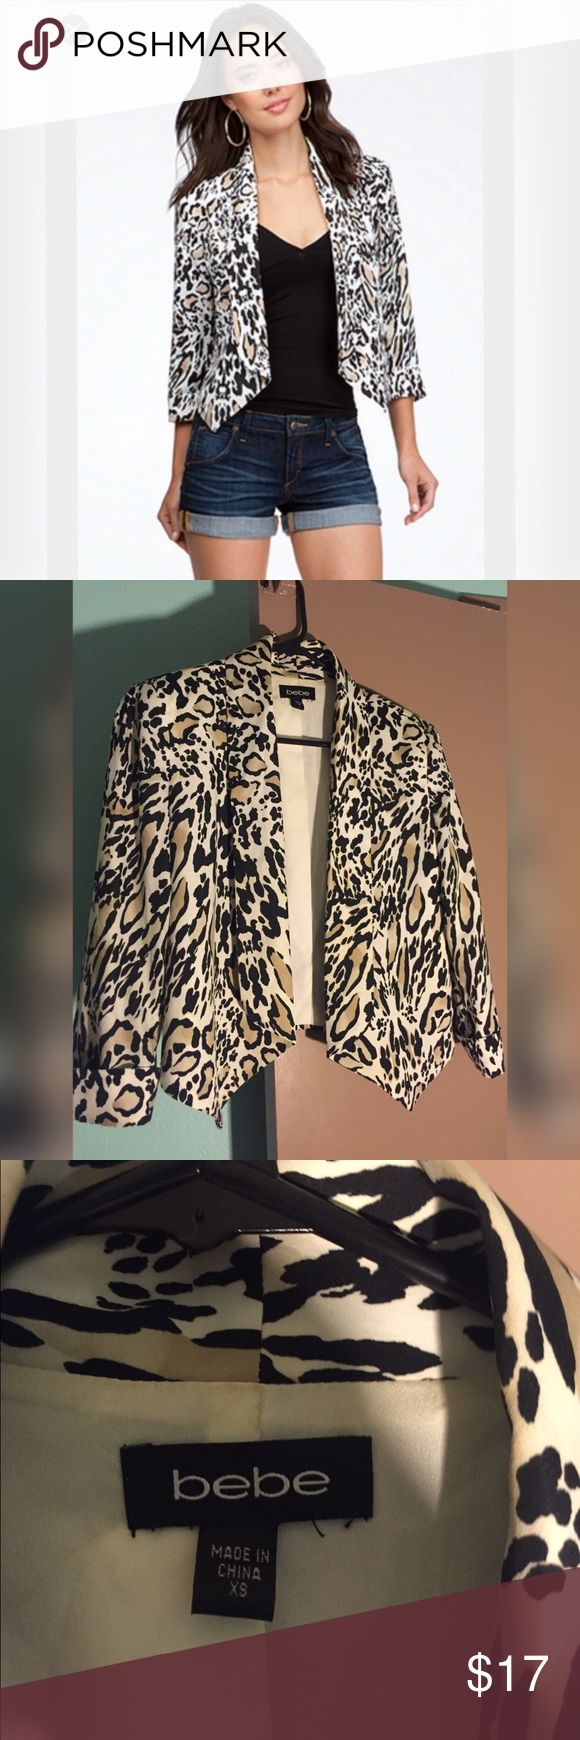 Bebe animal printed blazer This Bebe blazer is in excellent condition only been worn a couple of times. bebe Jackets & Coats Blazers